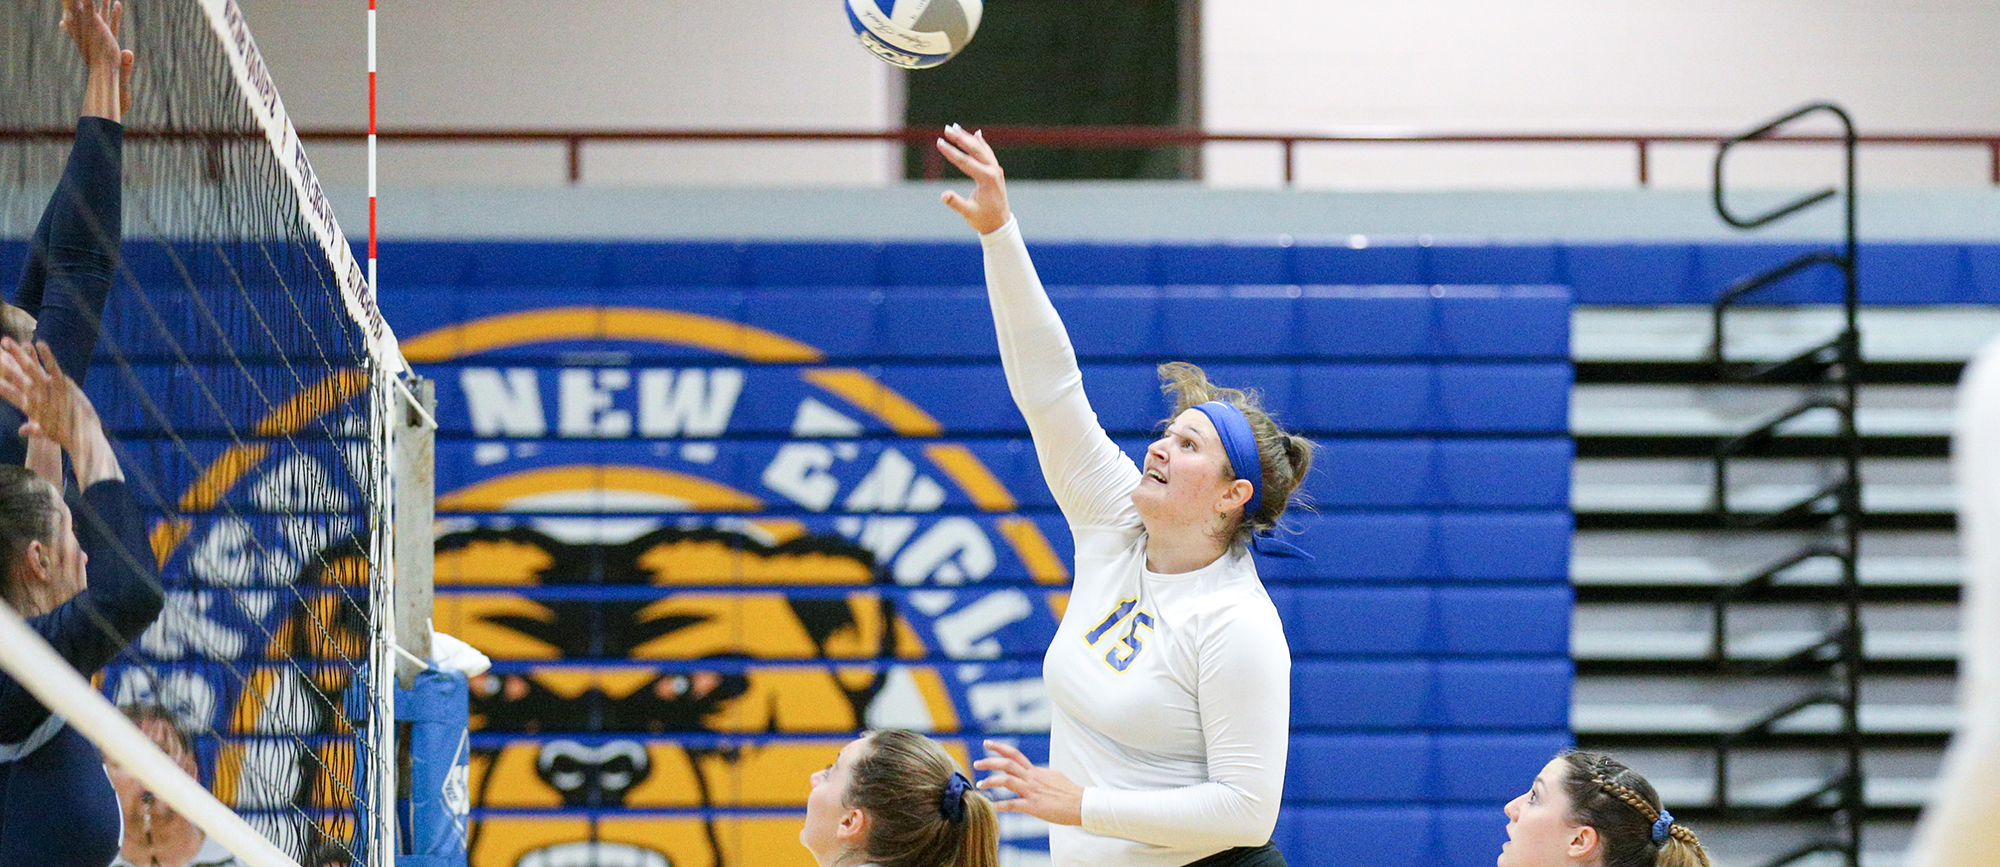 Sophomore Toni Fiore established a new career-high with ten kills in Western New England's 3-1 loss to Roger Williams on Saturday. (Photo by Chris Marion)